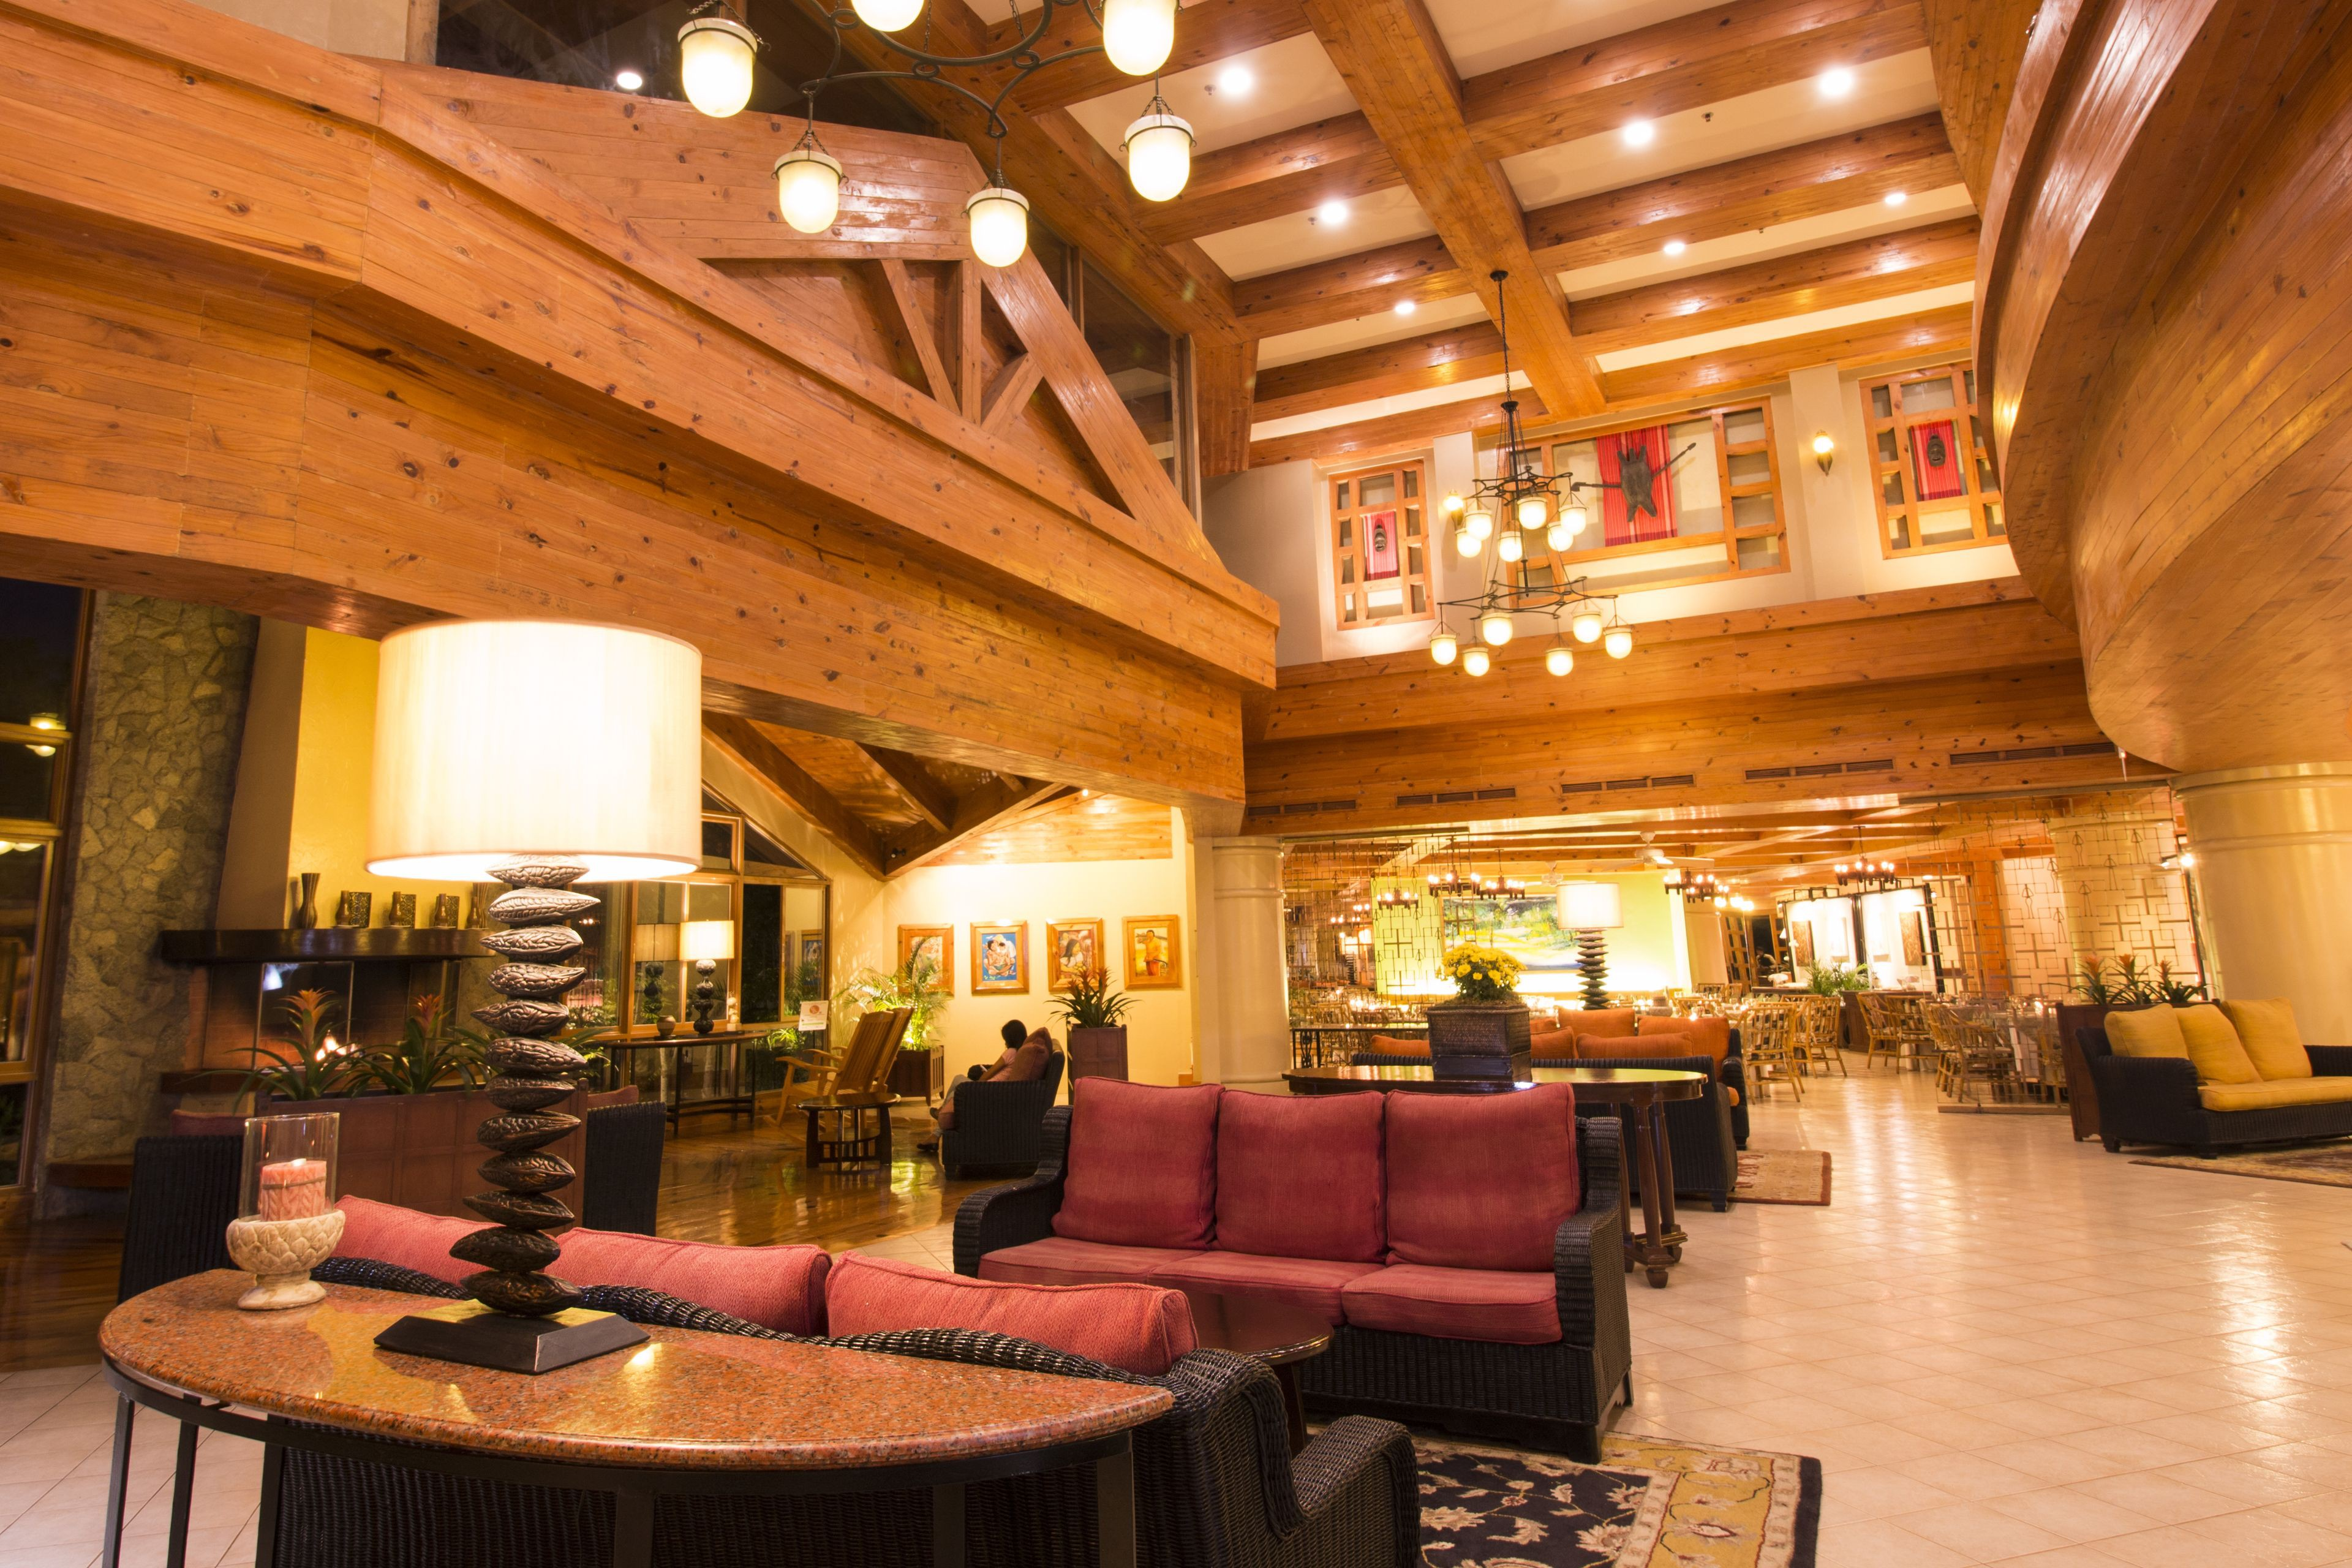 Courtesy of The Forest Lodge at Camp John Hay / Expedia